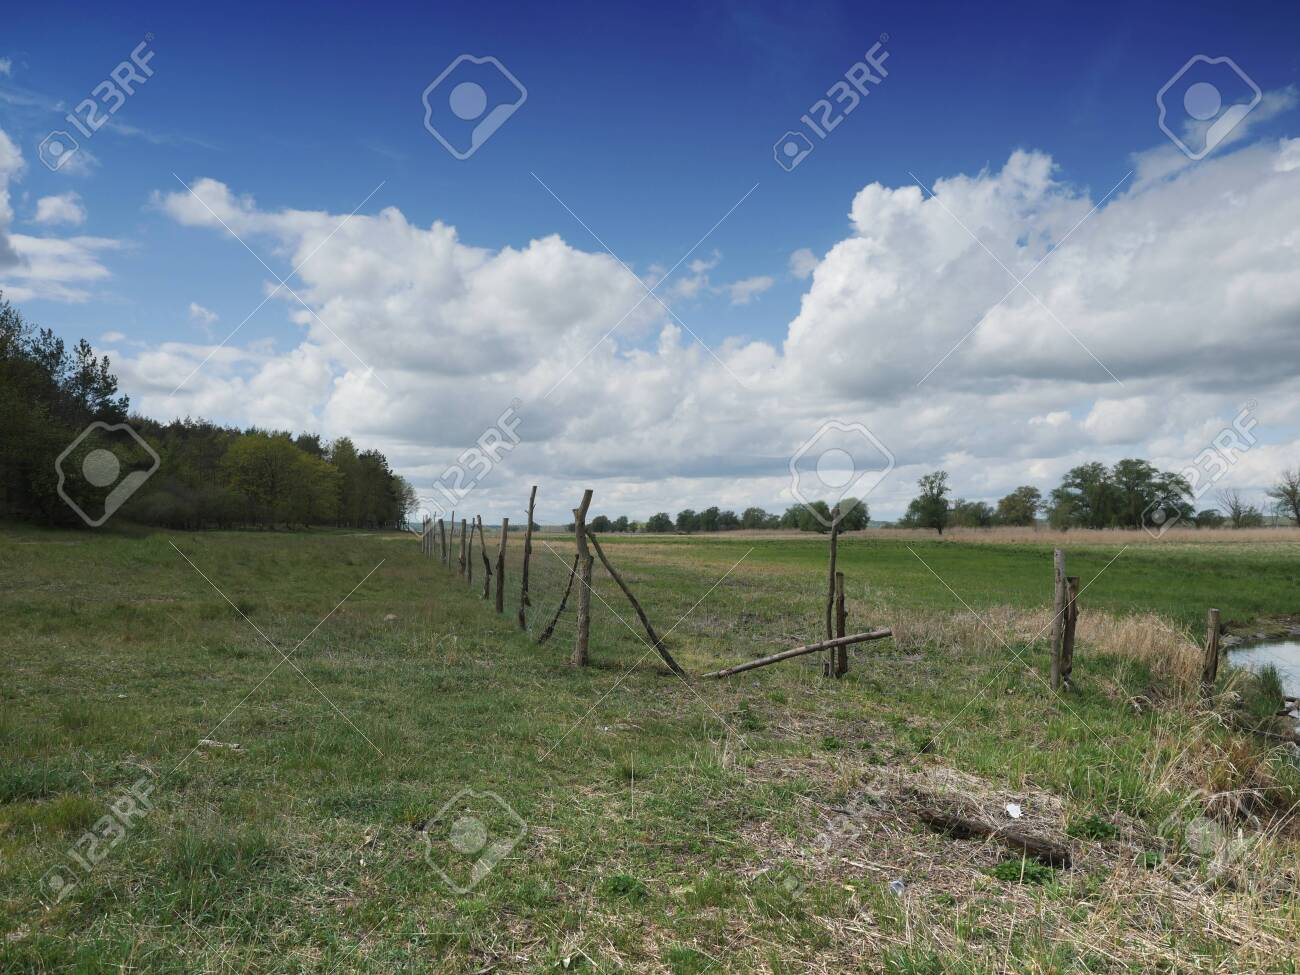 fenced empty pasture against the sky - 146057688